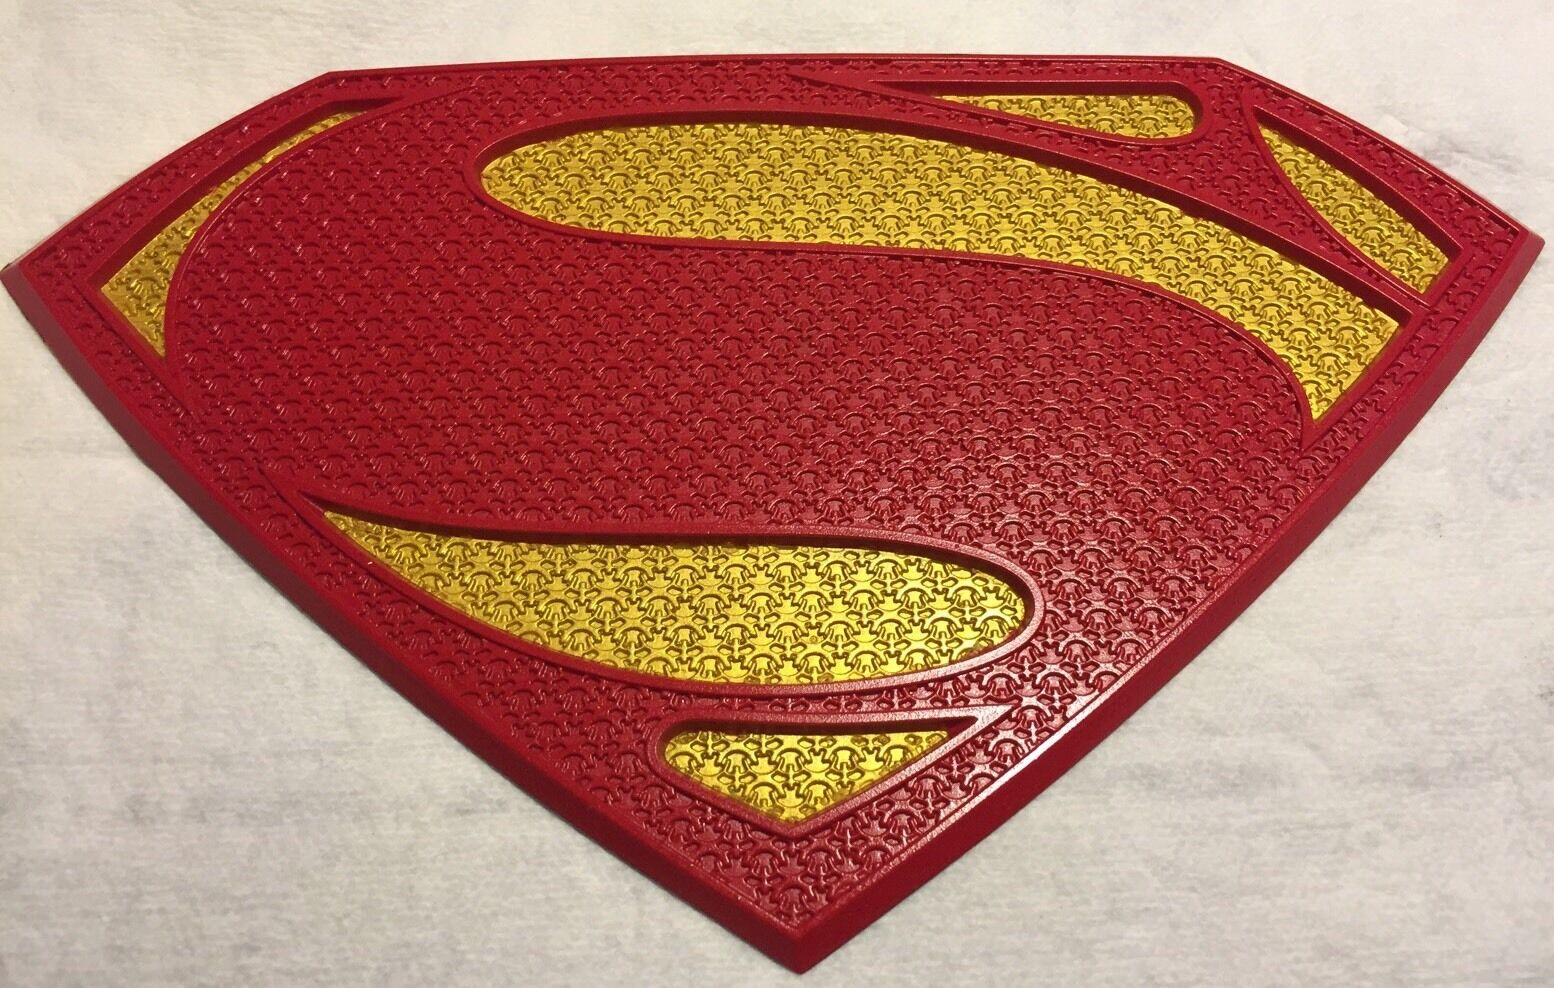 man of steel superman chest logo emblem symbol in red and